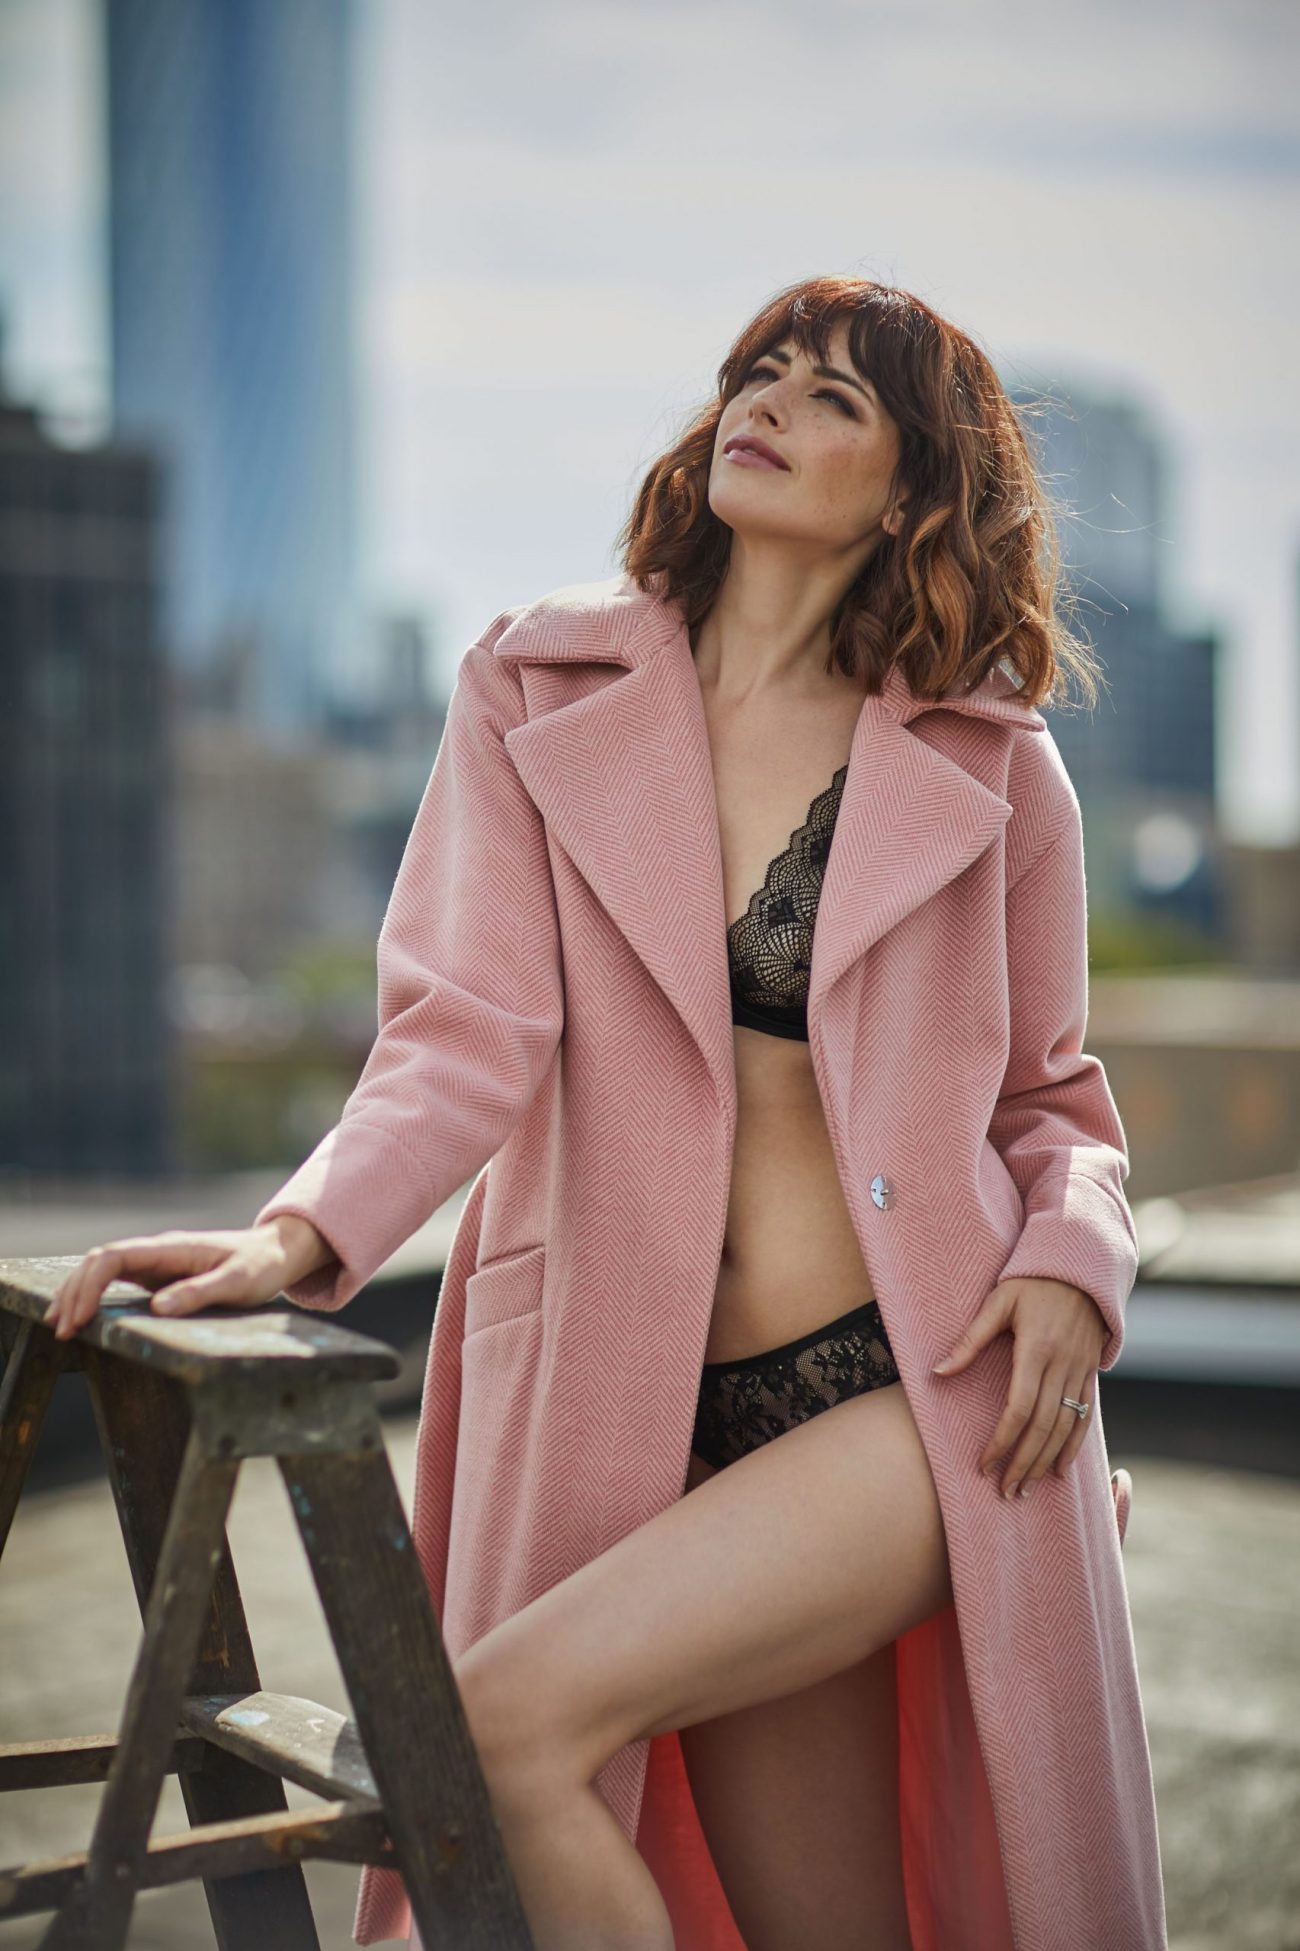 best chicago boudoir photography outdoor scaled - A Boudoir Session - Is It Worth the Investment?